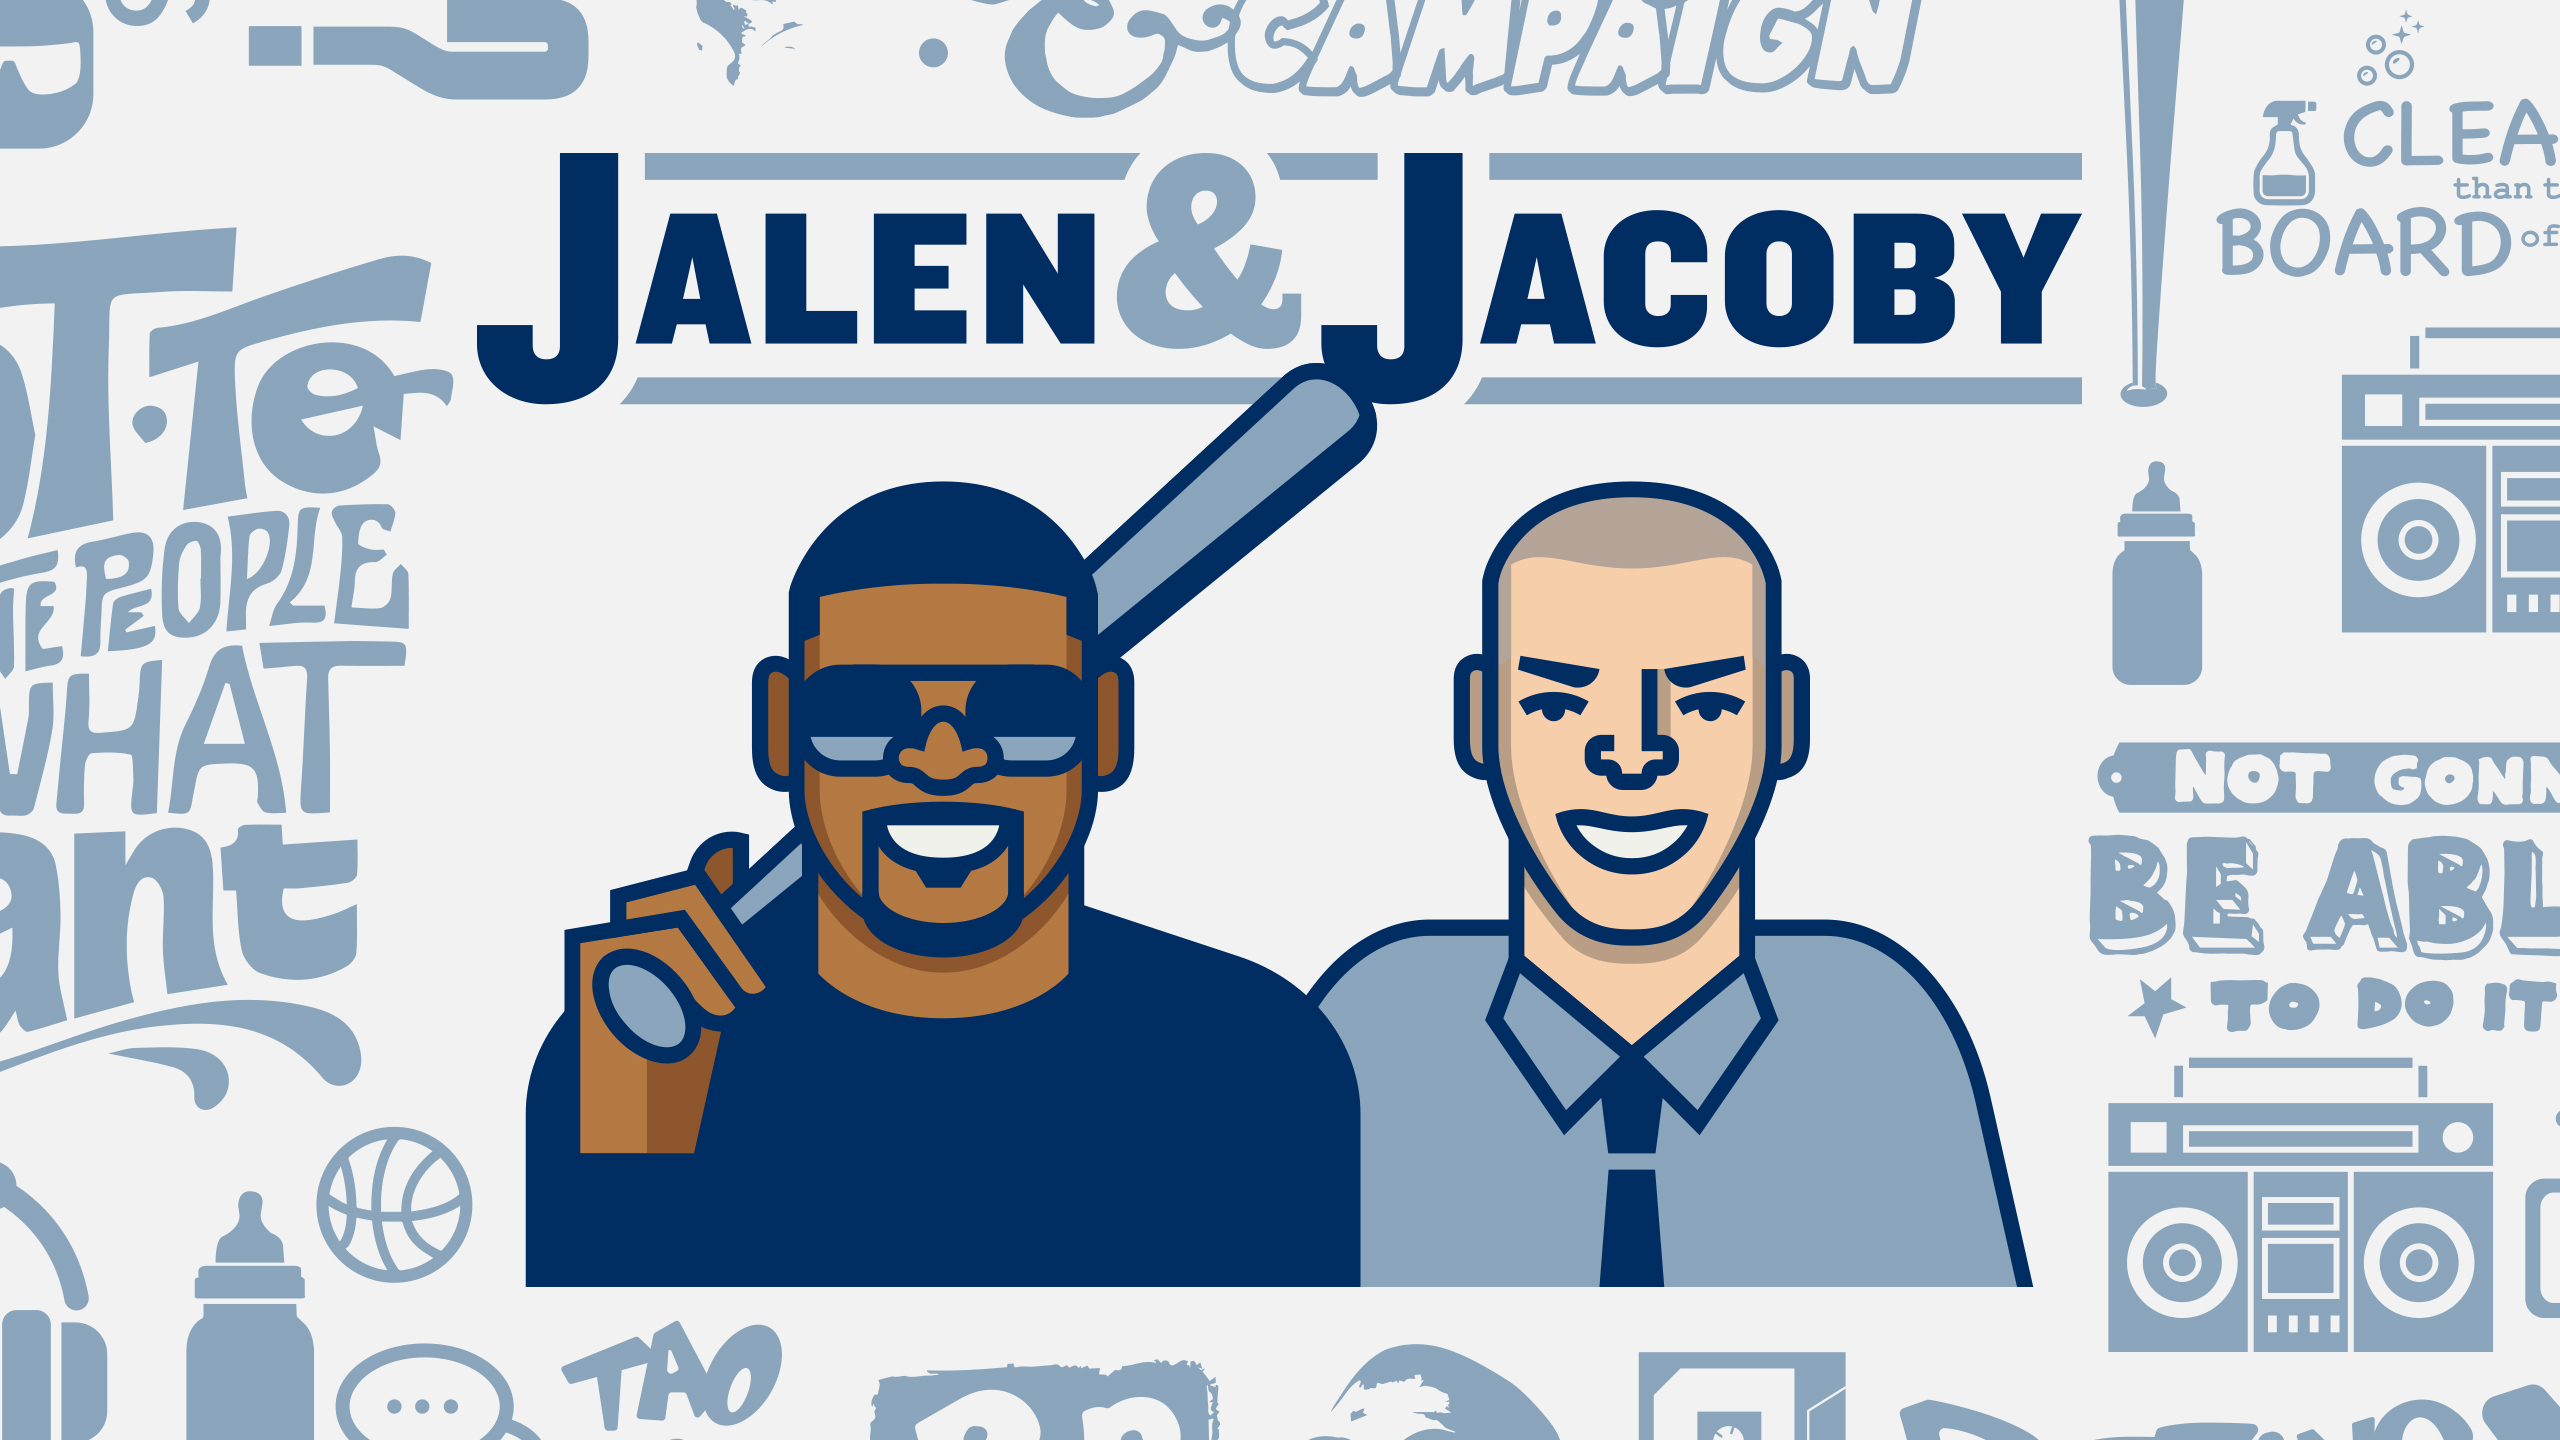 Thu, 2/14 - Jalen & Jacoby